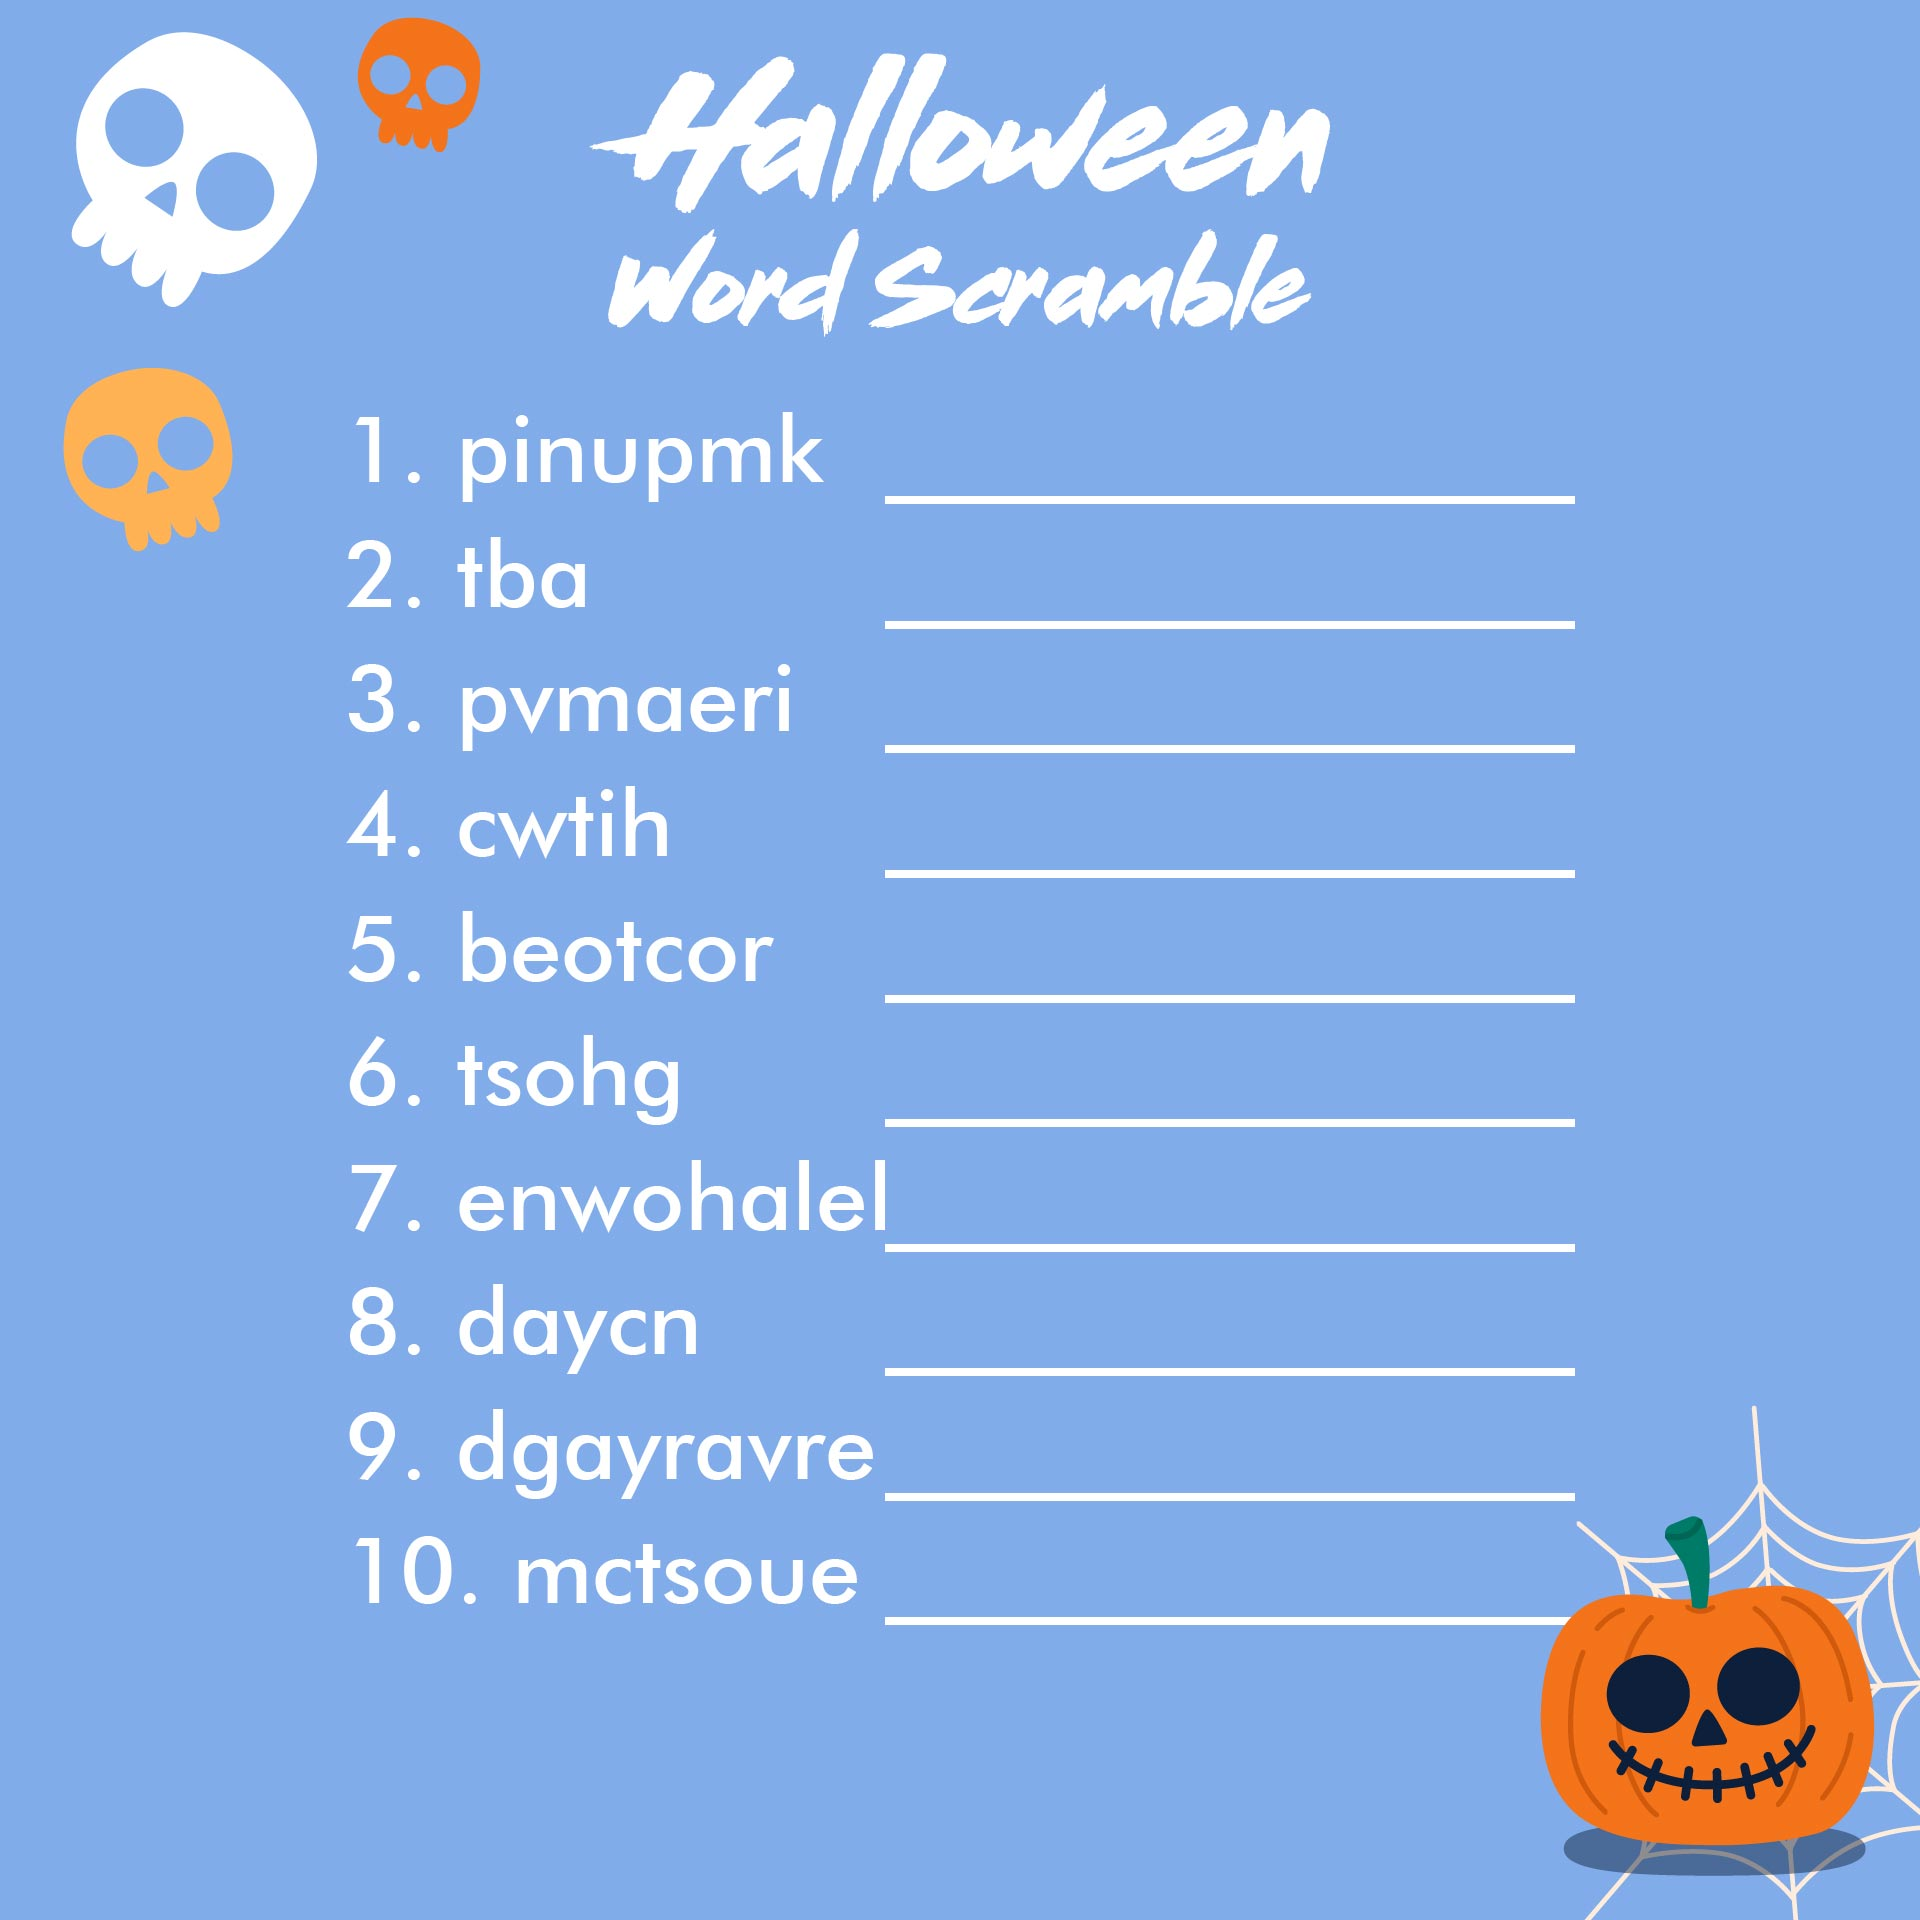 8 Images of Halloween Word Scramble Printable